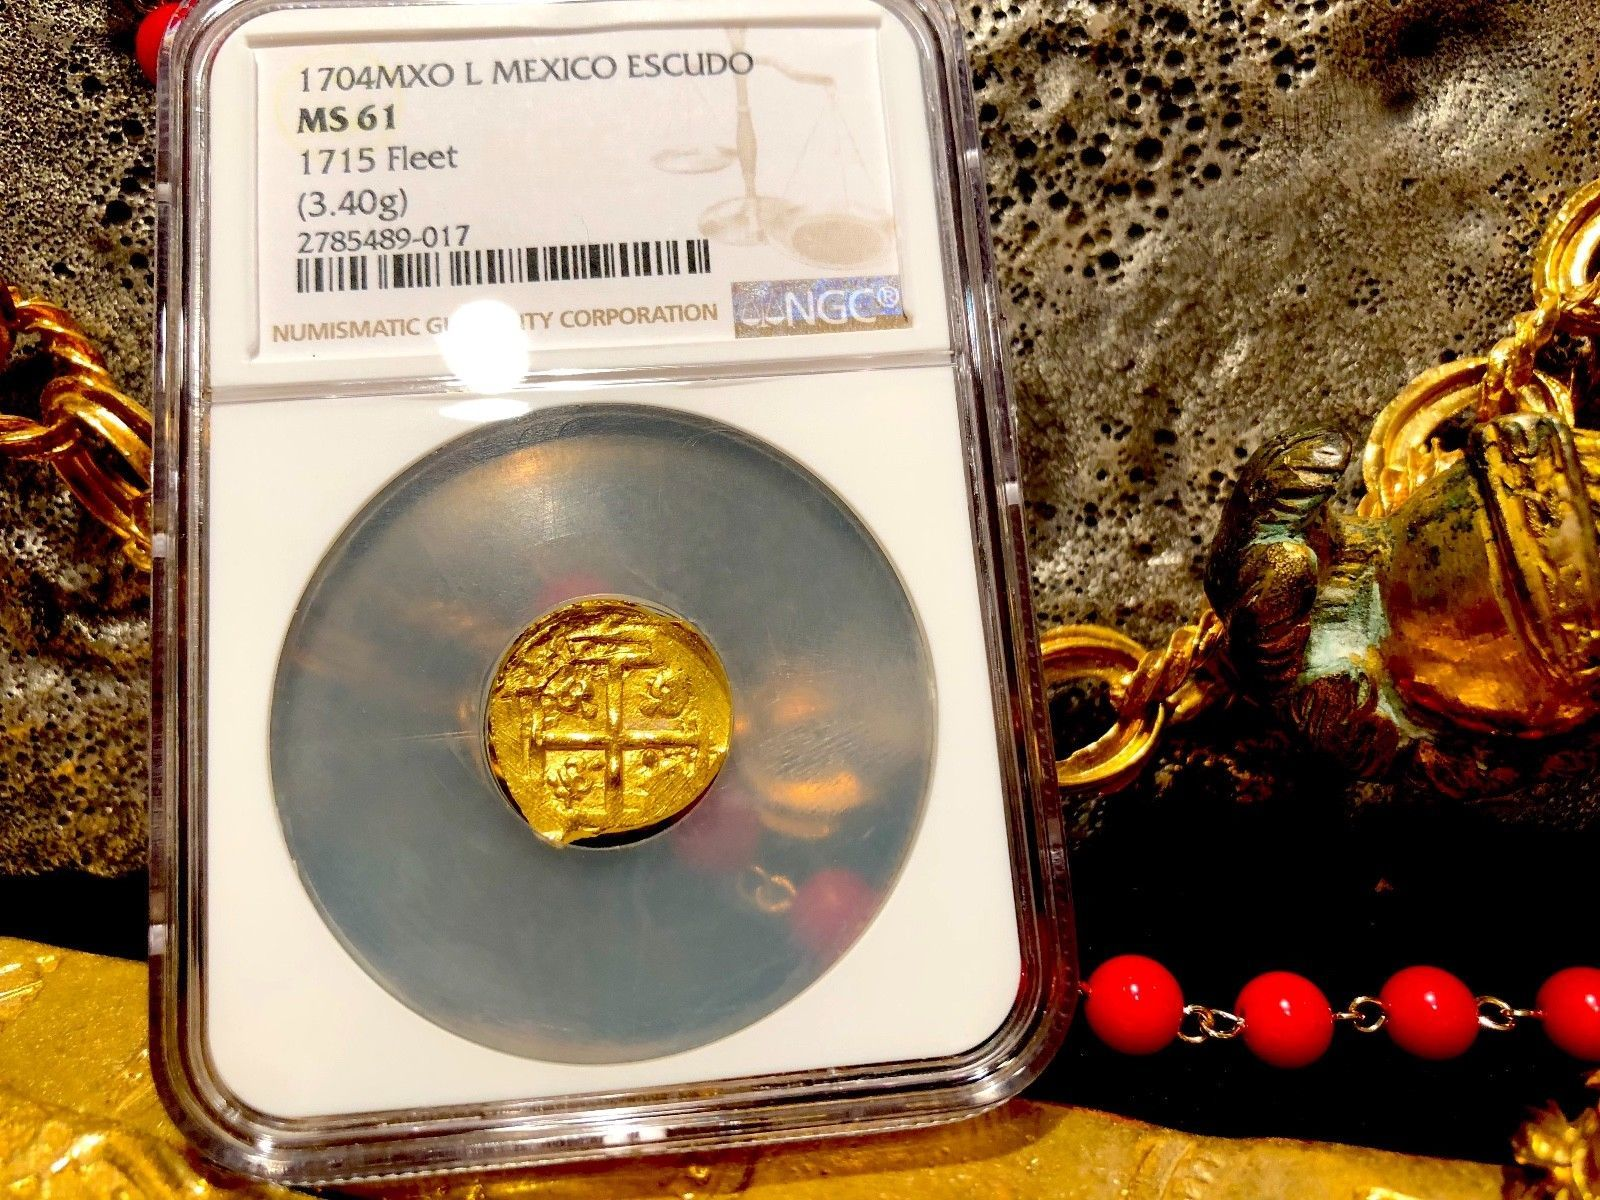 "MEXICO 1704 DATE 1 ESCUDO ""1715 PLATE FLEET SHIPWRECK"" NGC 61 PIRATE GOLD COINS"